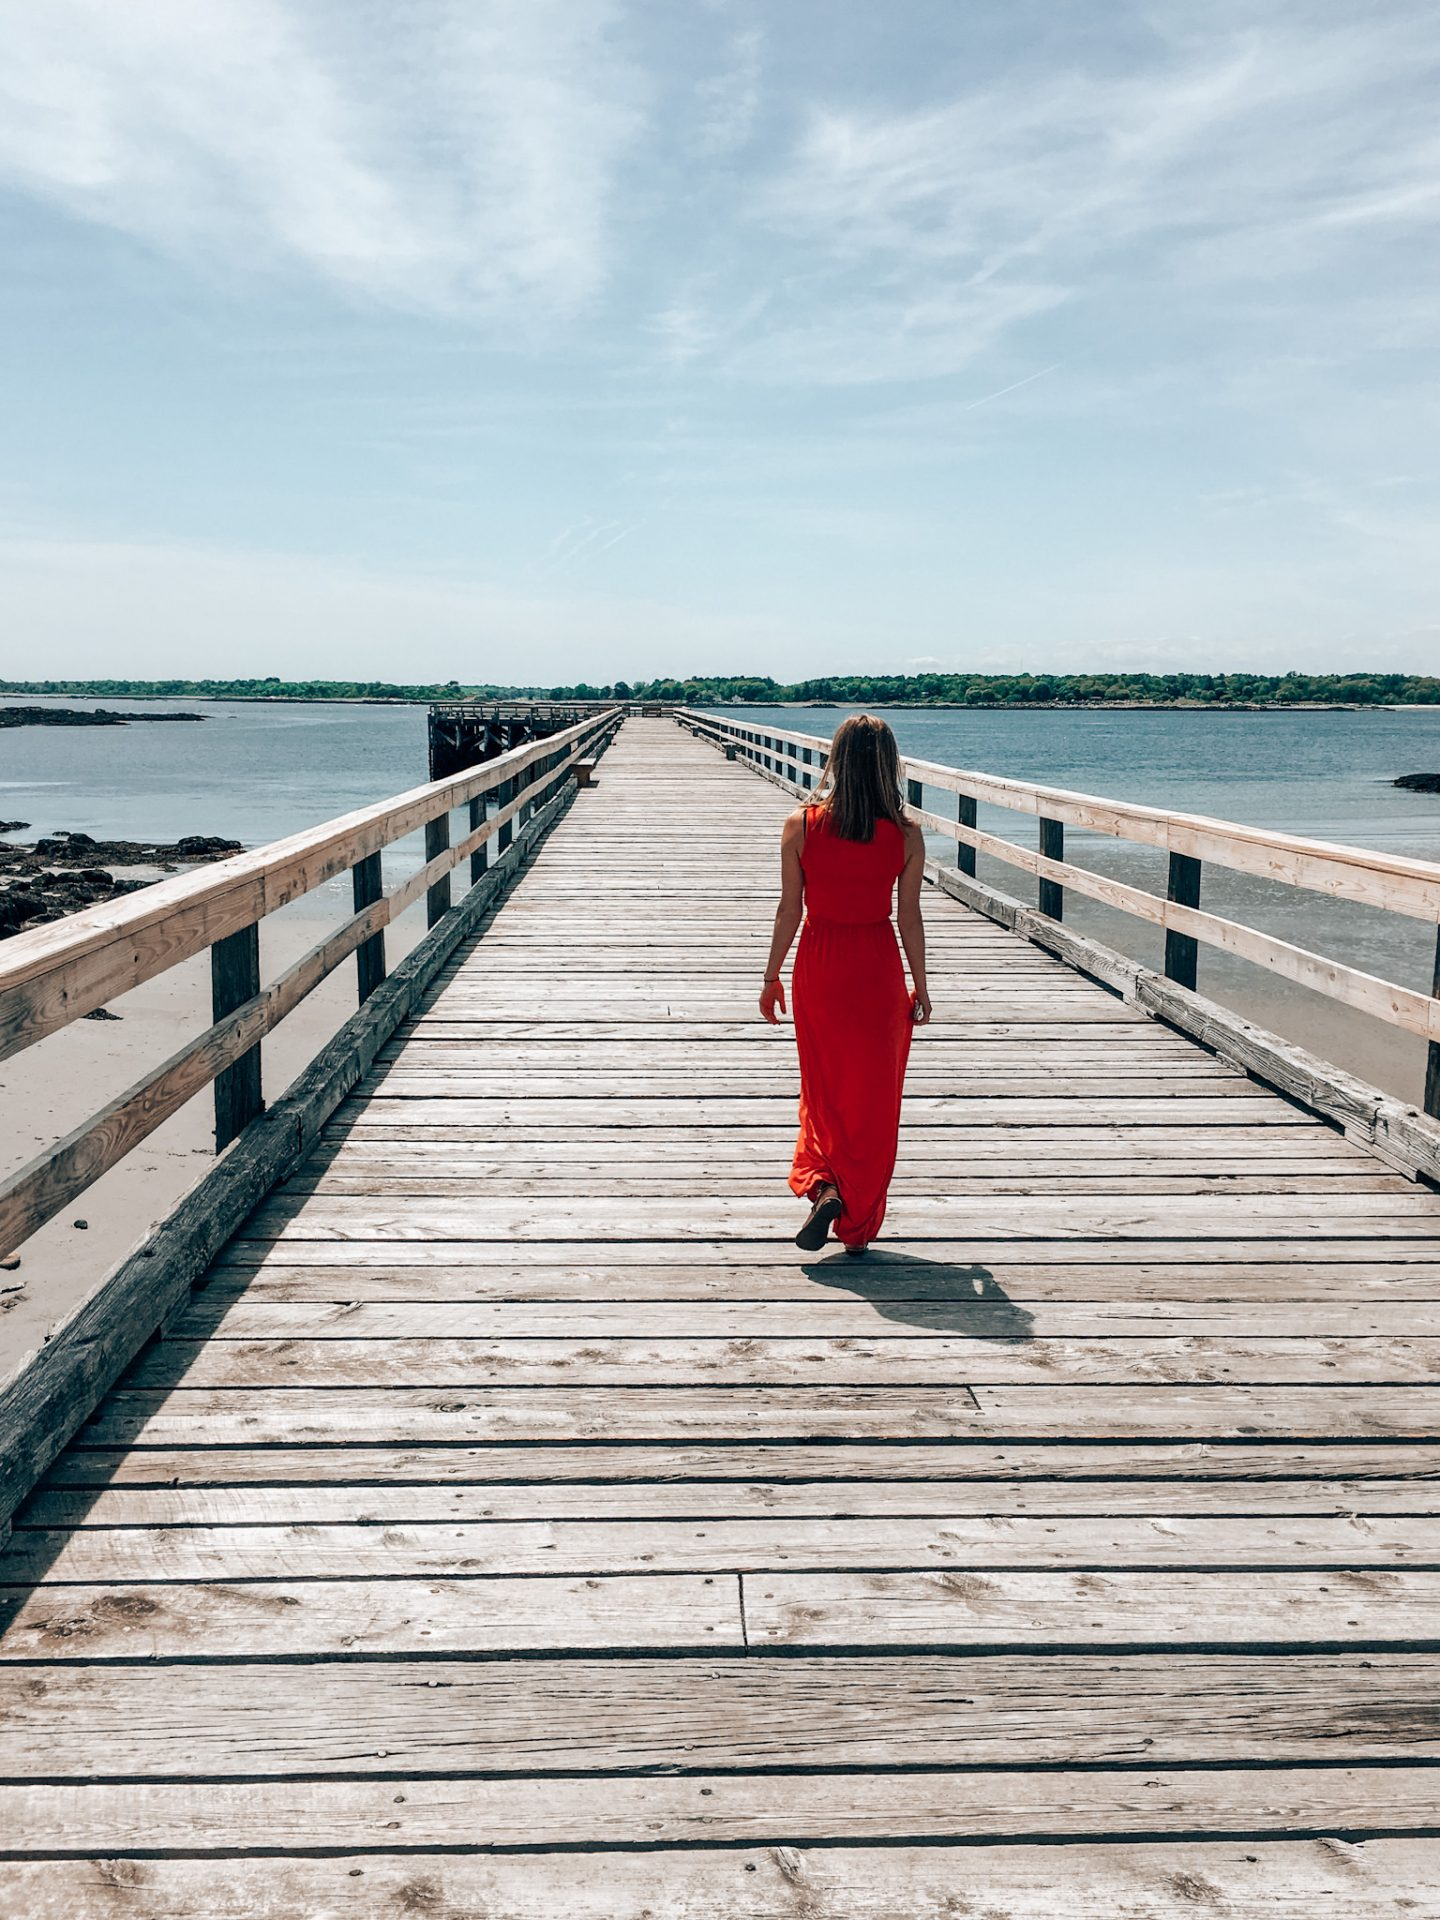 Pier at Fort Foster in Kittery, ME